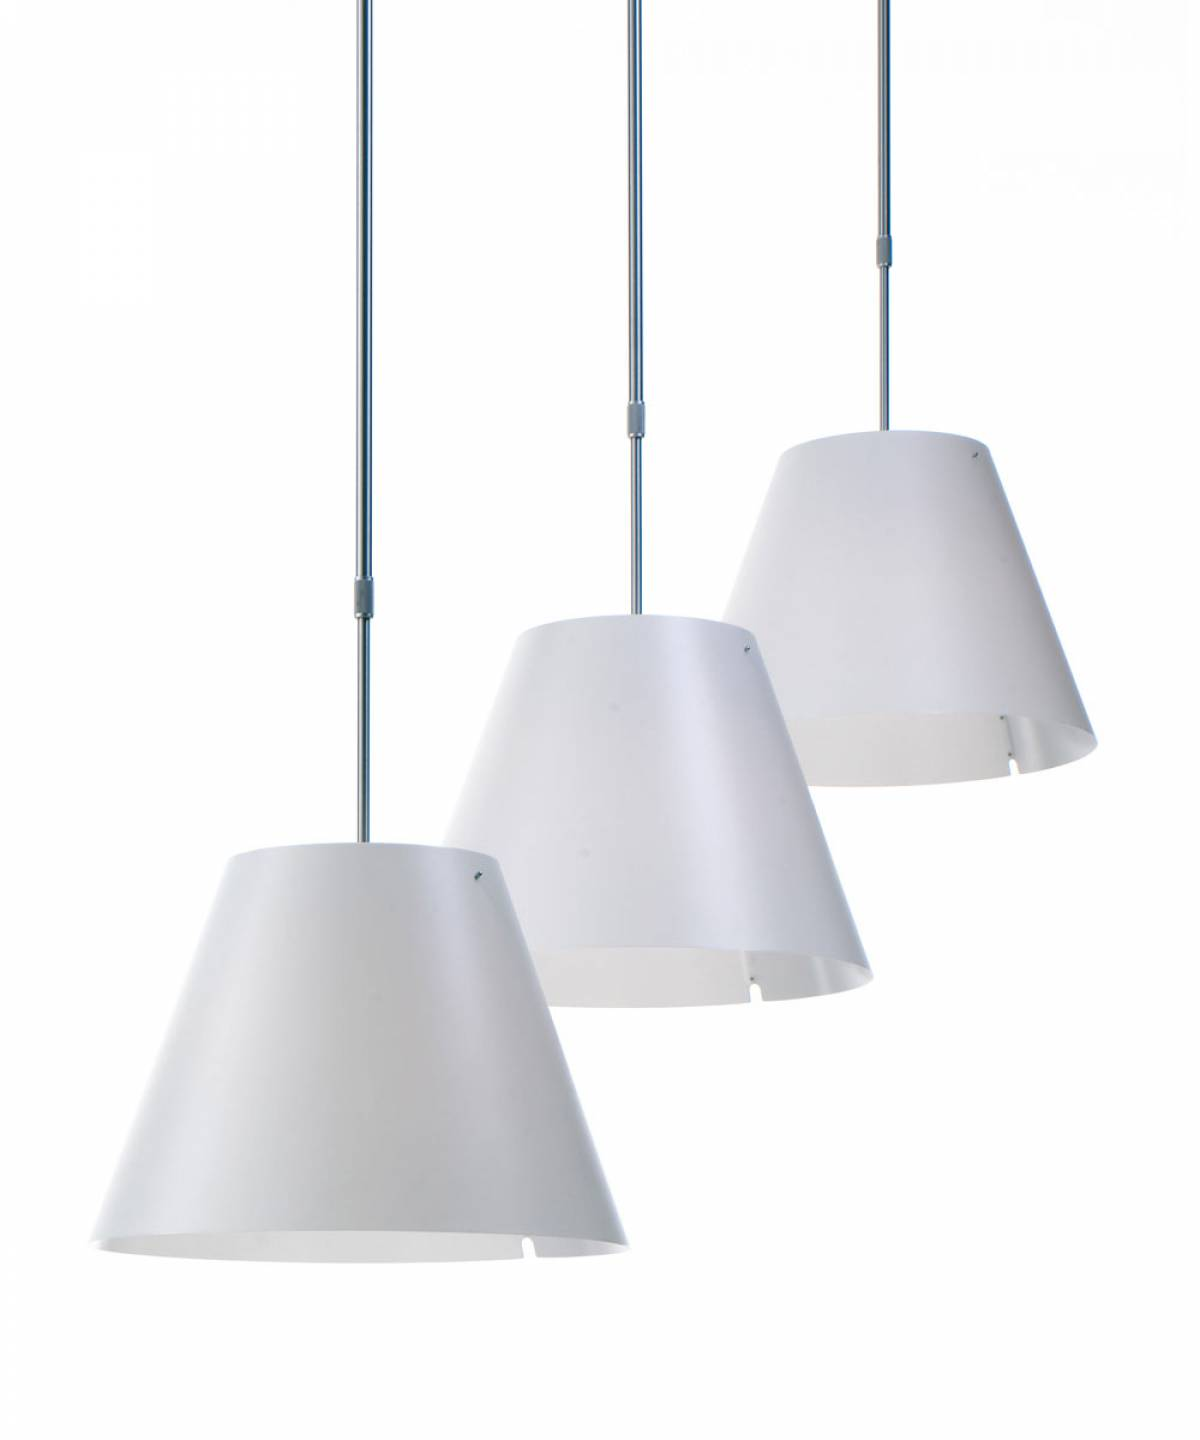 2 Costanza suspension lamp Luceplan